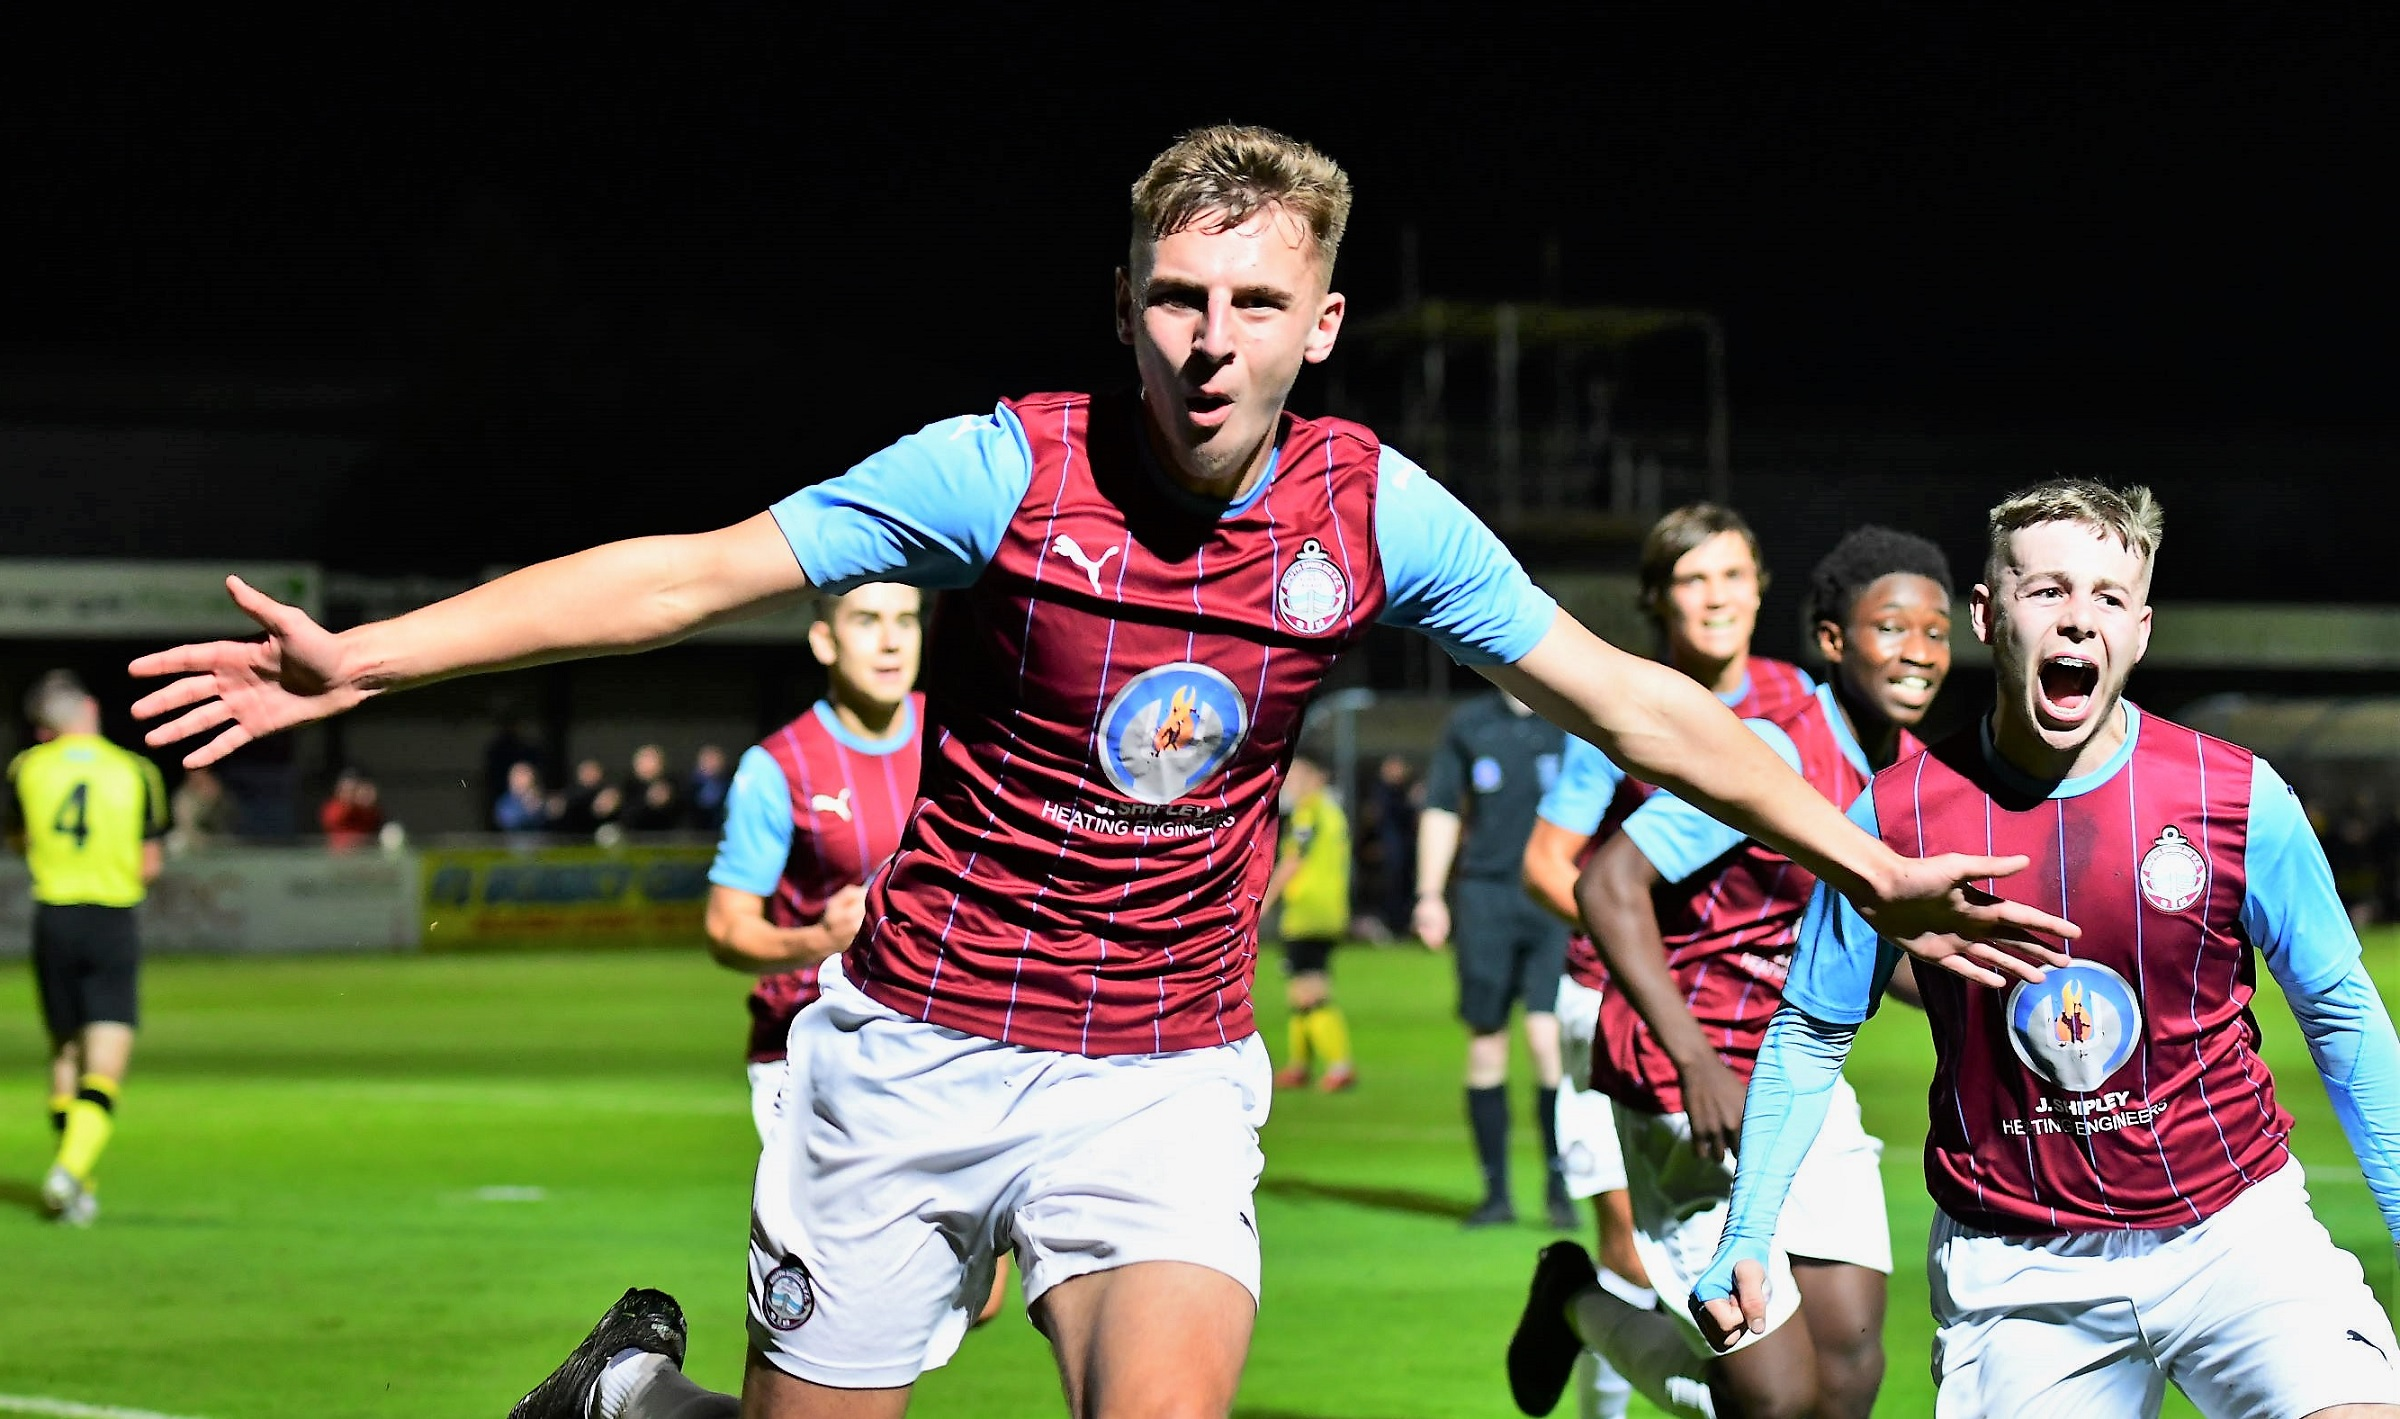 South Shields 5-1 Harrogate Town: Young Mariners reach first round again